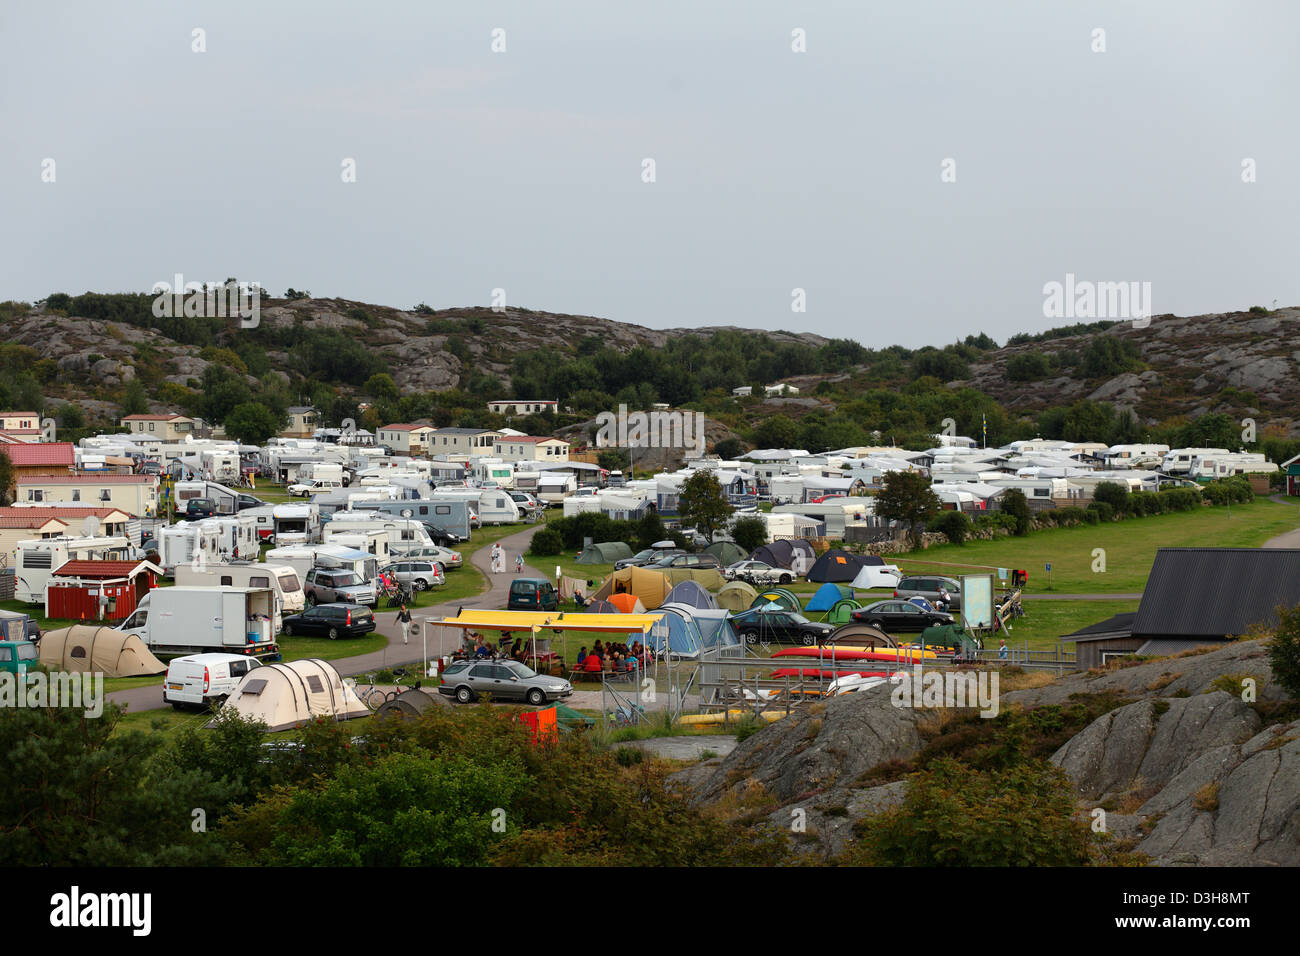 Stocken, Sweden, camping in the coastal town of stalling - Stock Image